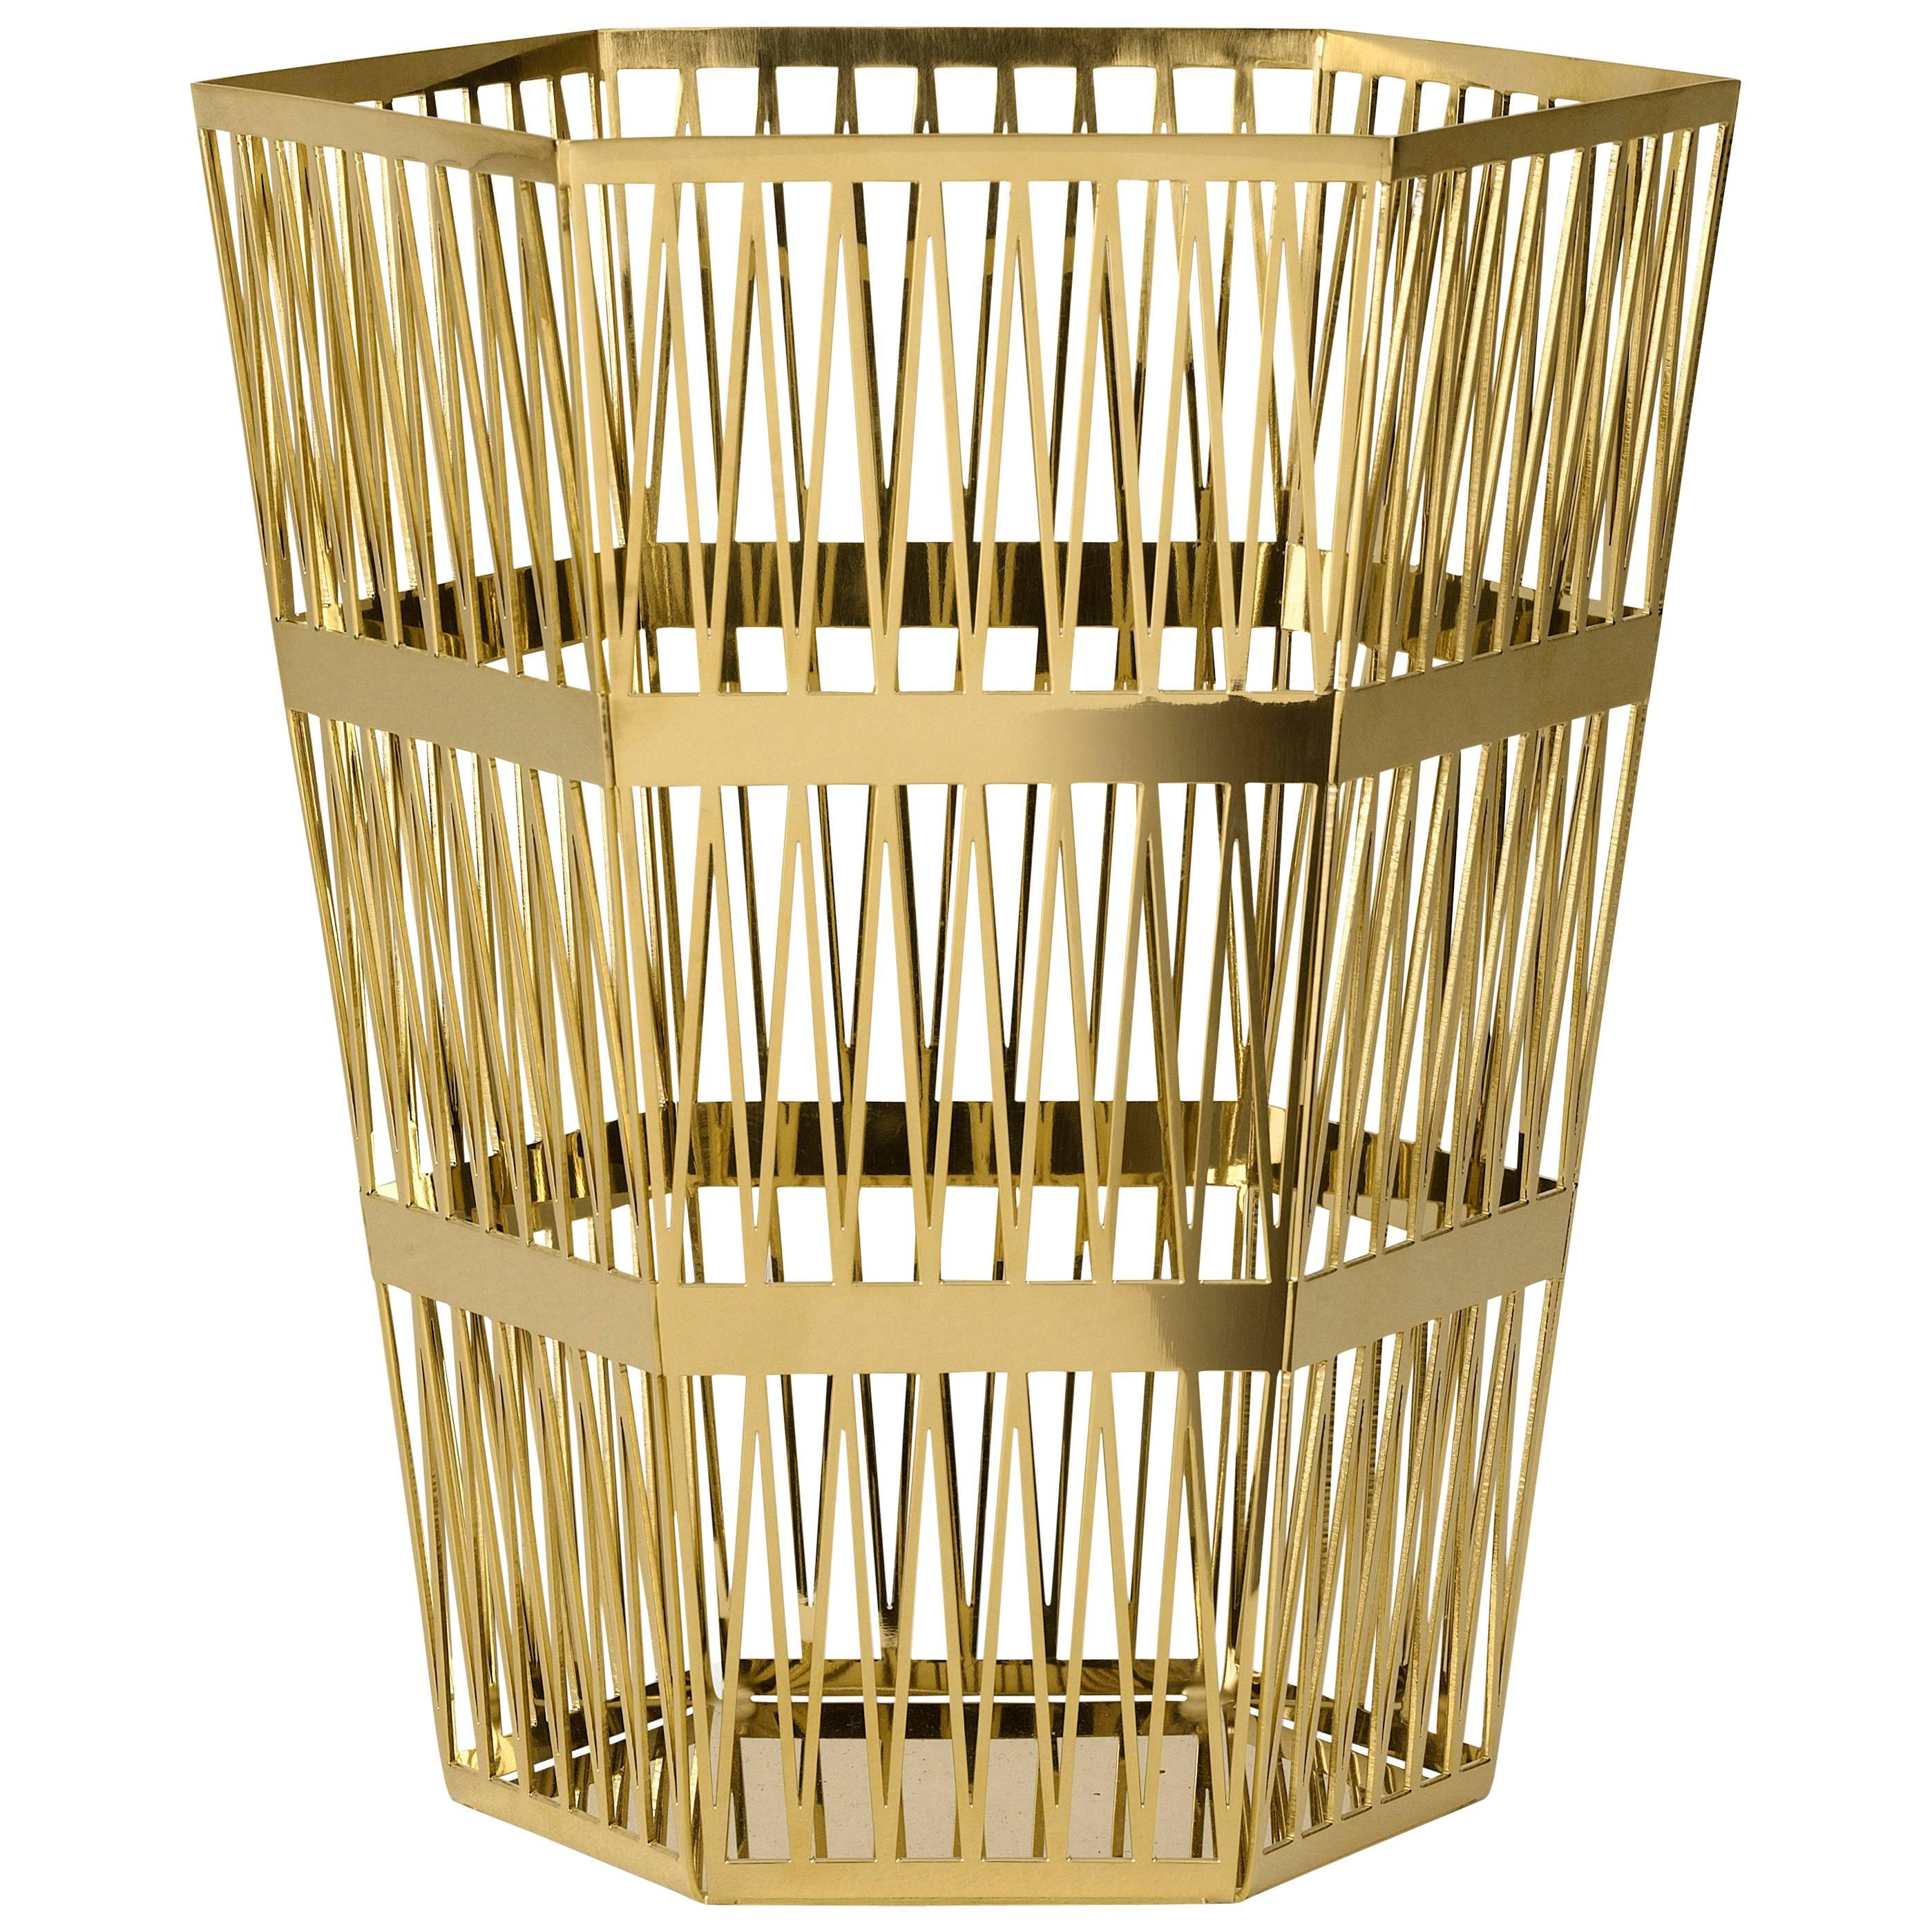 Ghidini 1961 Tip Top Large Paper Basket in Polished Gold Finish